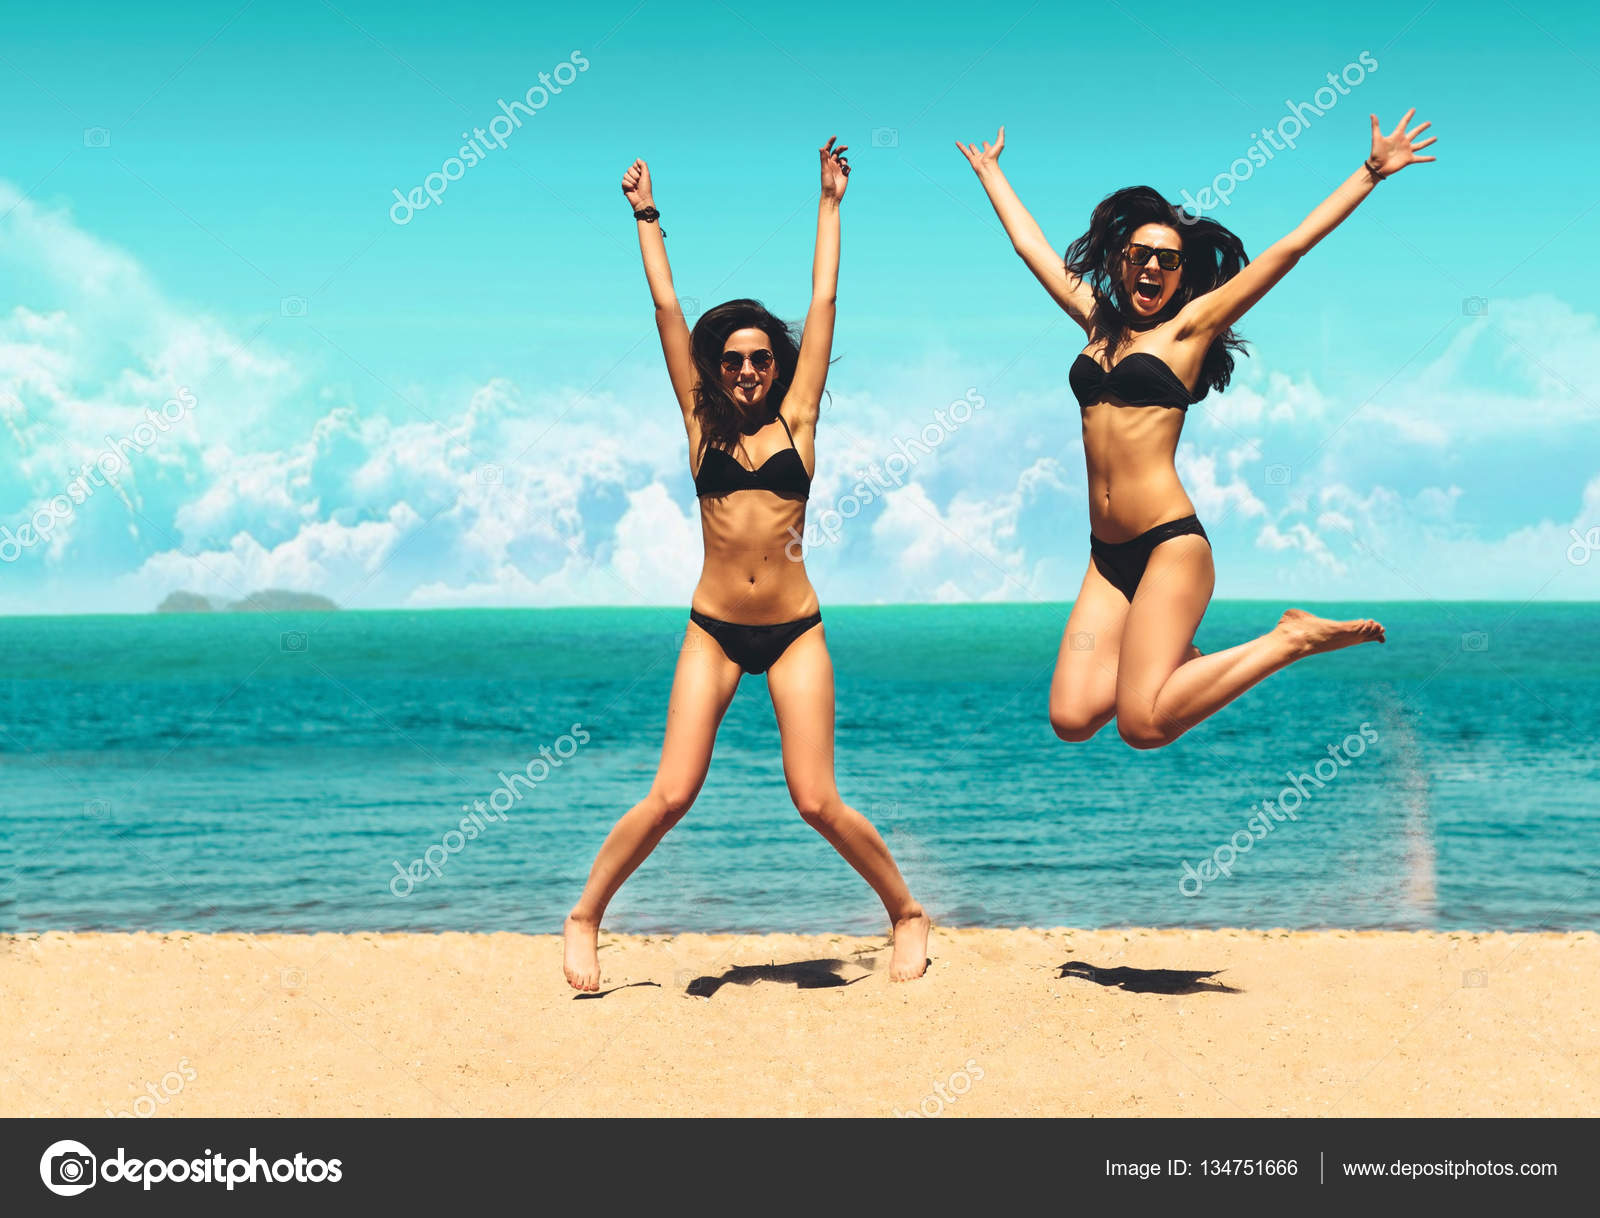 Two Attractive Girls In Bikinis Jumping On The Beach Best Friends Having Fun Summer Vacation Holiday Lifestyle Happy Women Freedom White Sand